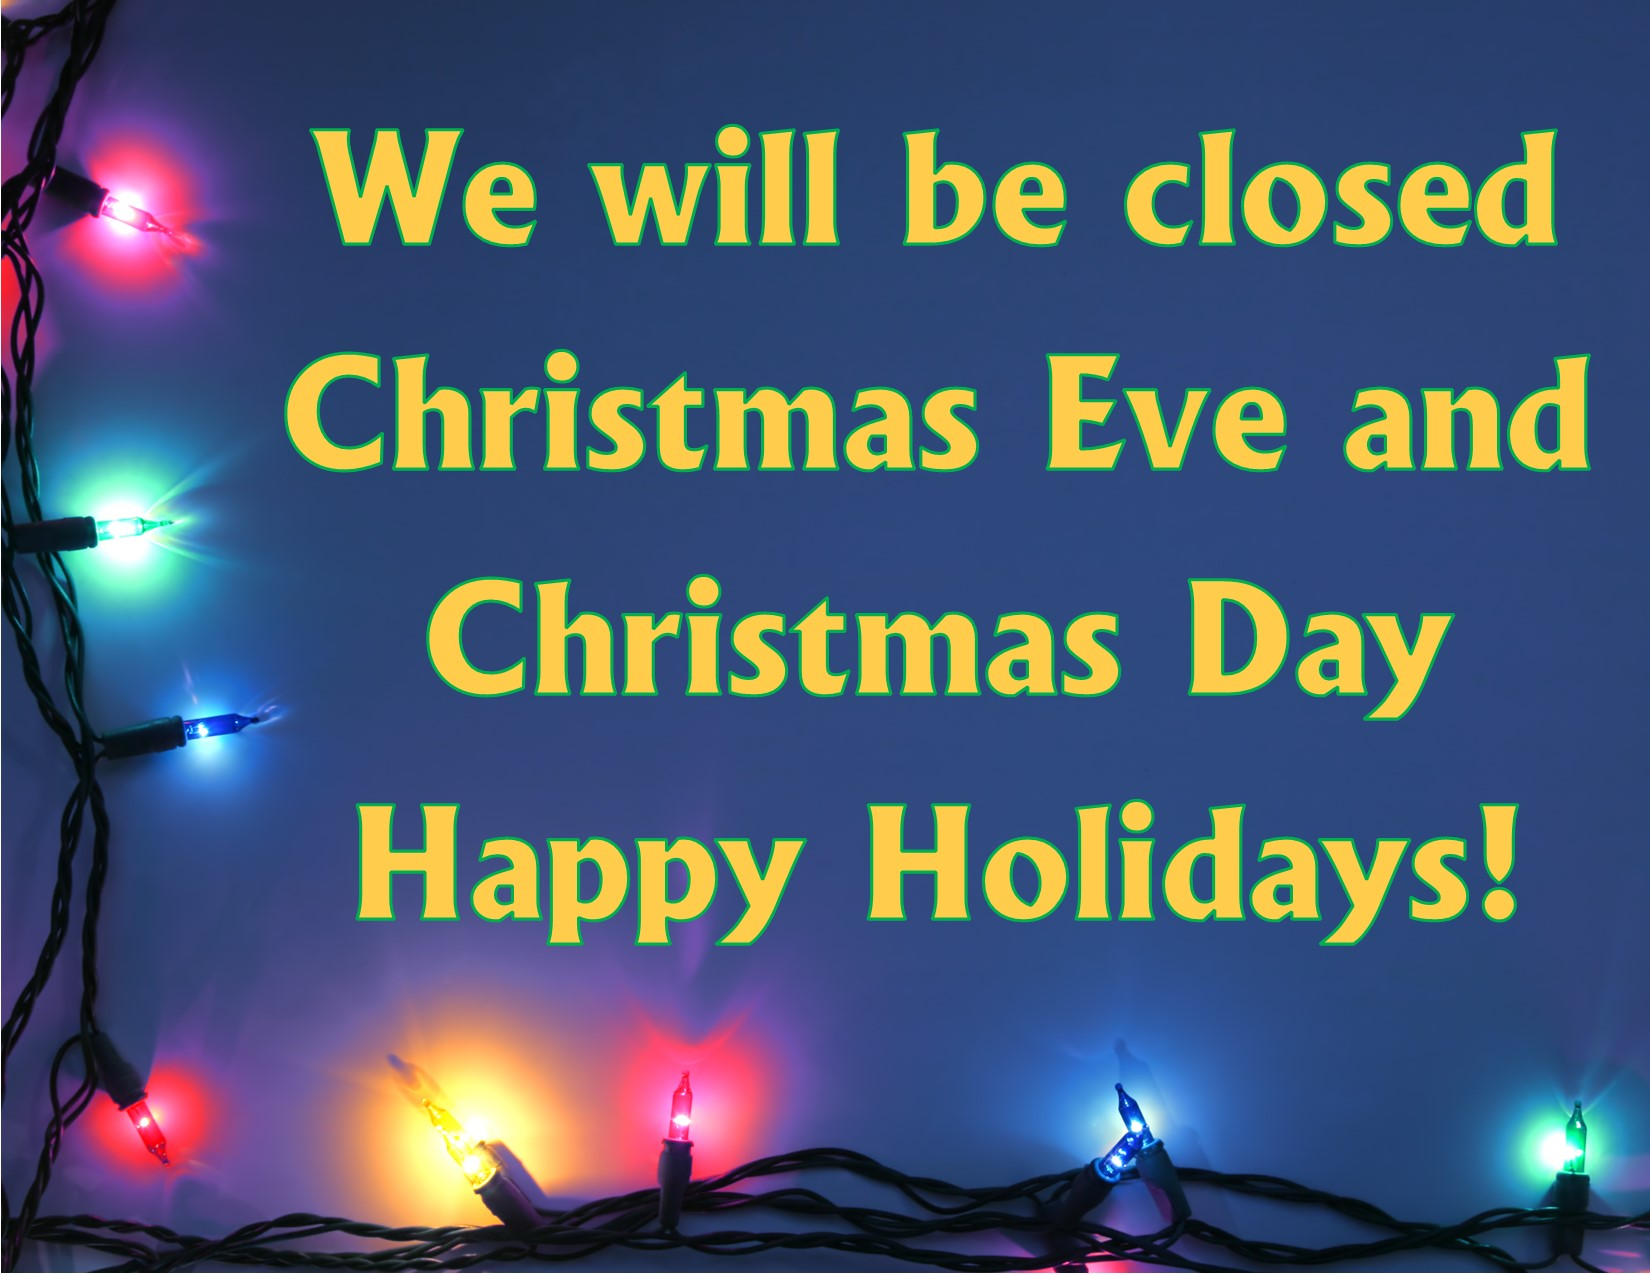 Closed Christmas Eve and Christmas Day